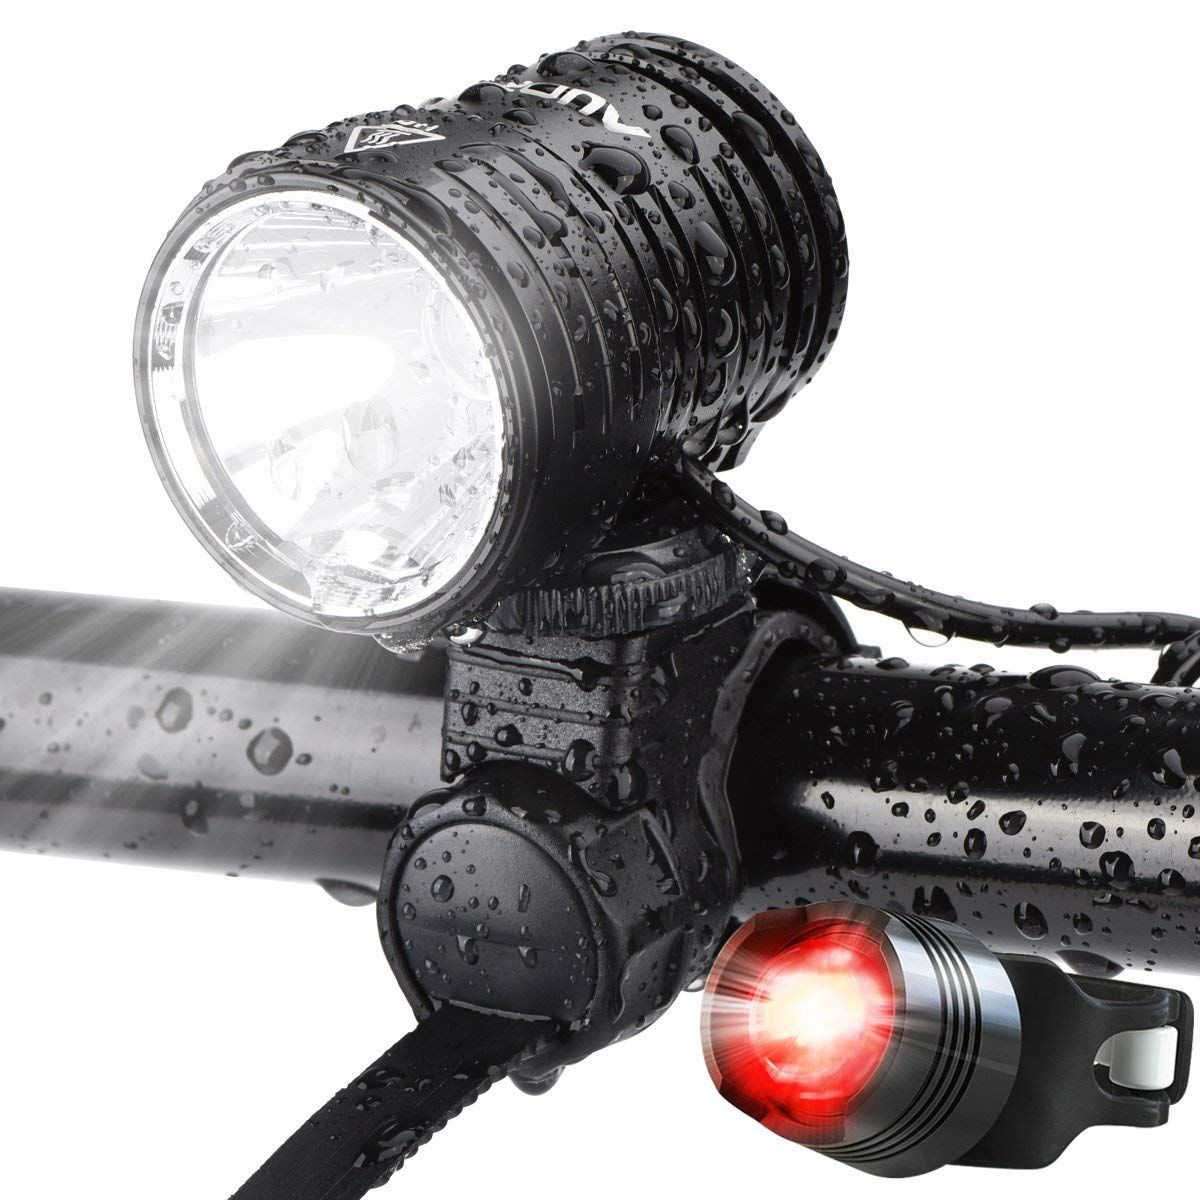 Auopro Led Bike Light Set 1200 Lumens Cycling Headlight Usb Rechargeable And Safety Back Taillight Cree Bicycle Bike Lights Bike Front Light Bike Lights Led